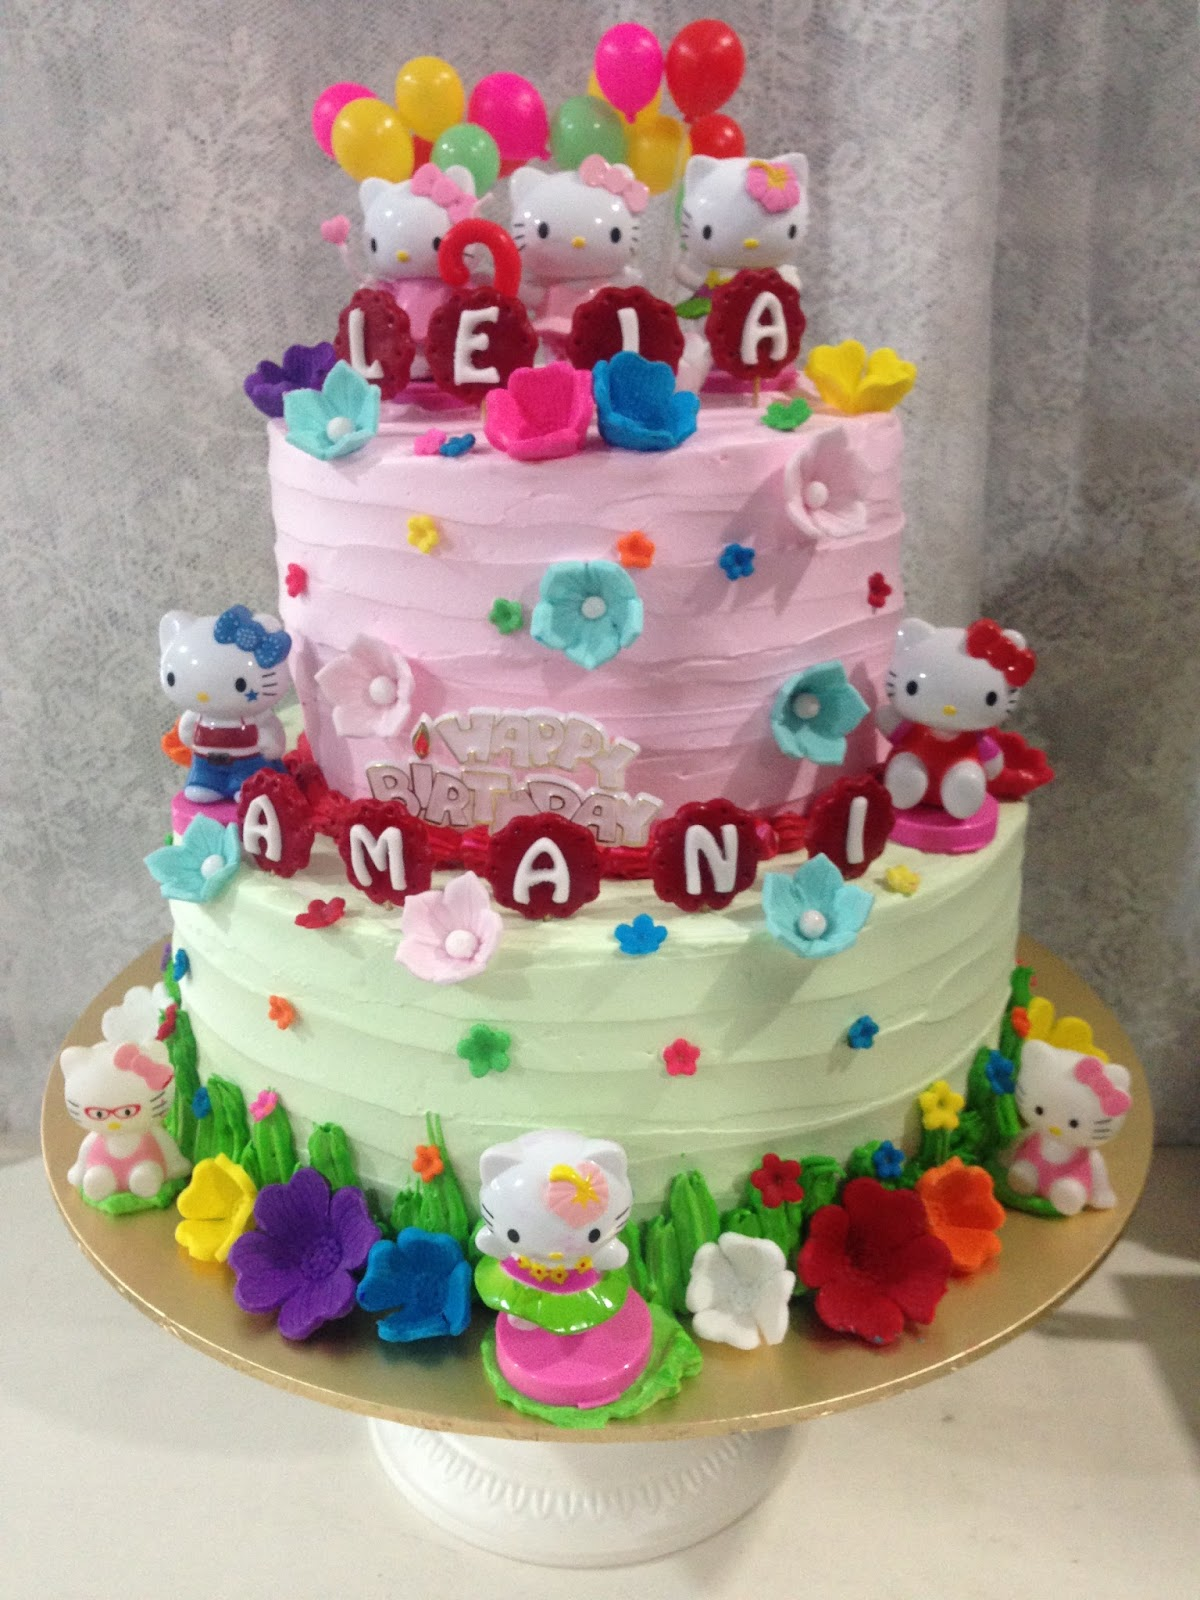 Cake Designs Of Hello Kitty : ninie cakes house: Hello Kitty Cake Design